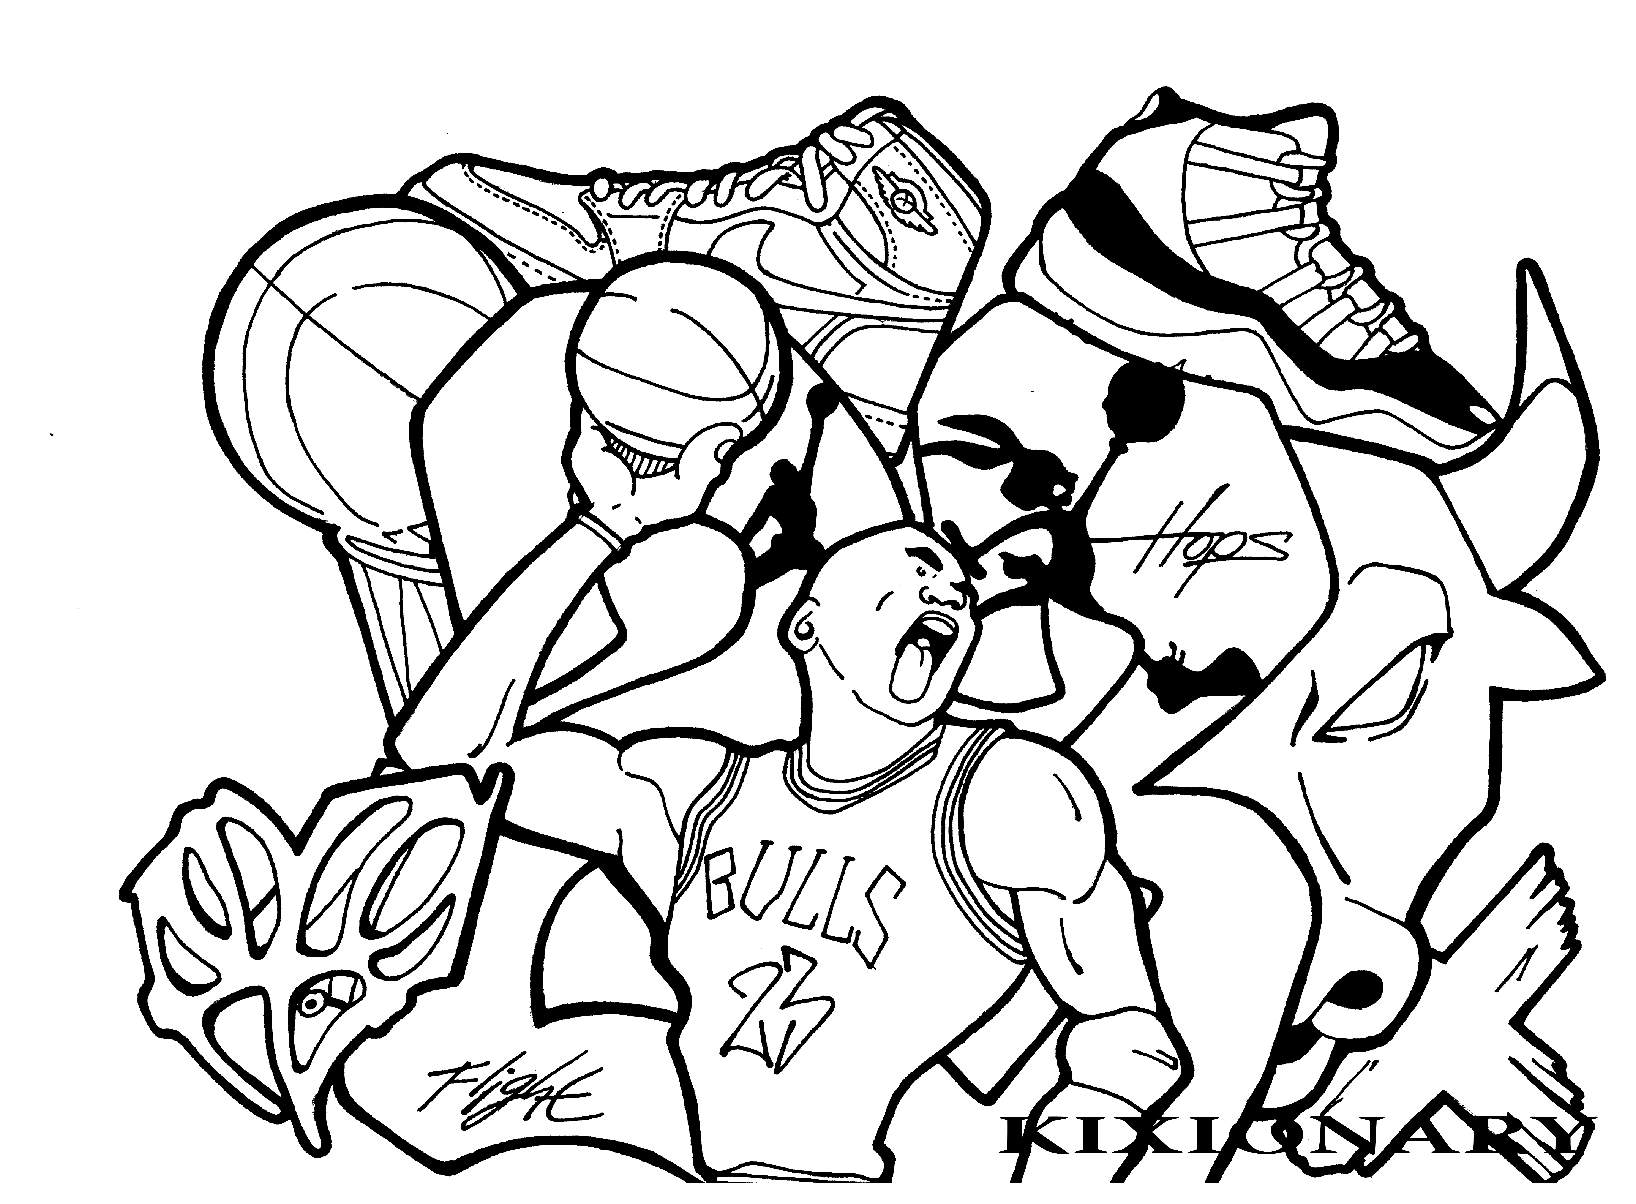 coloring adult graffiti michael jordan by kixionary world